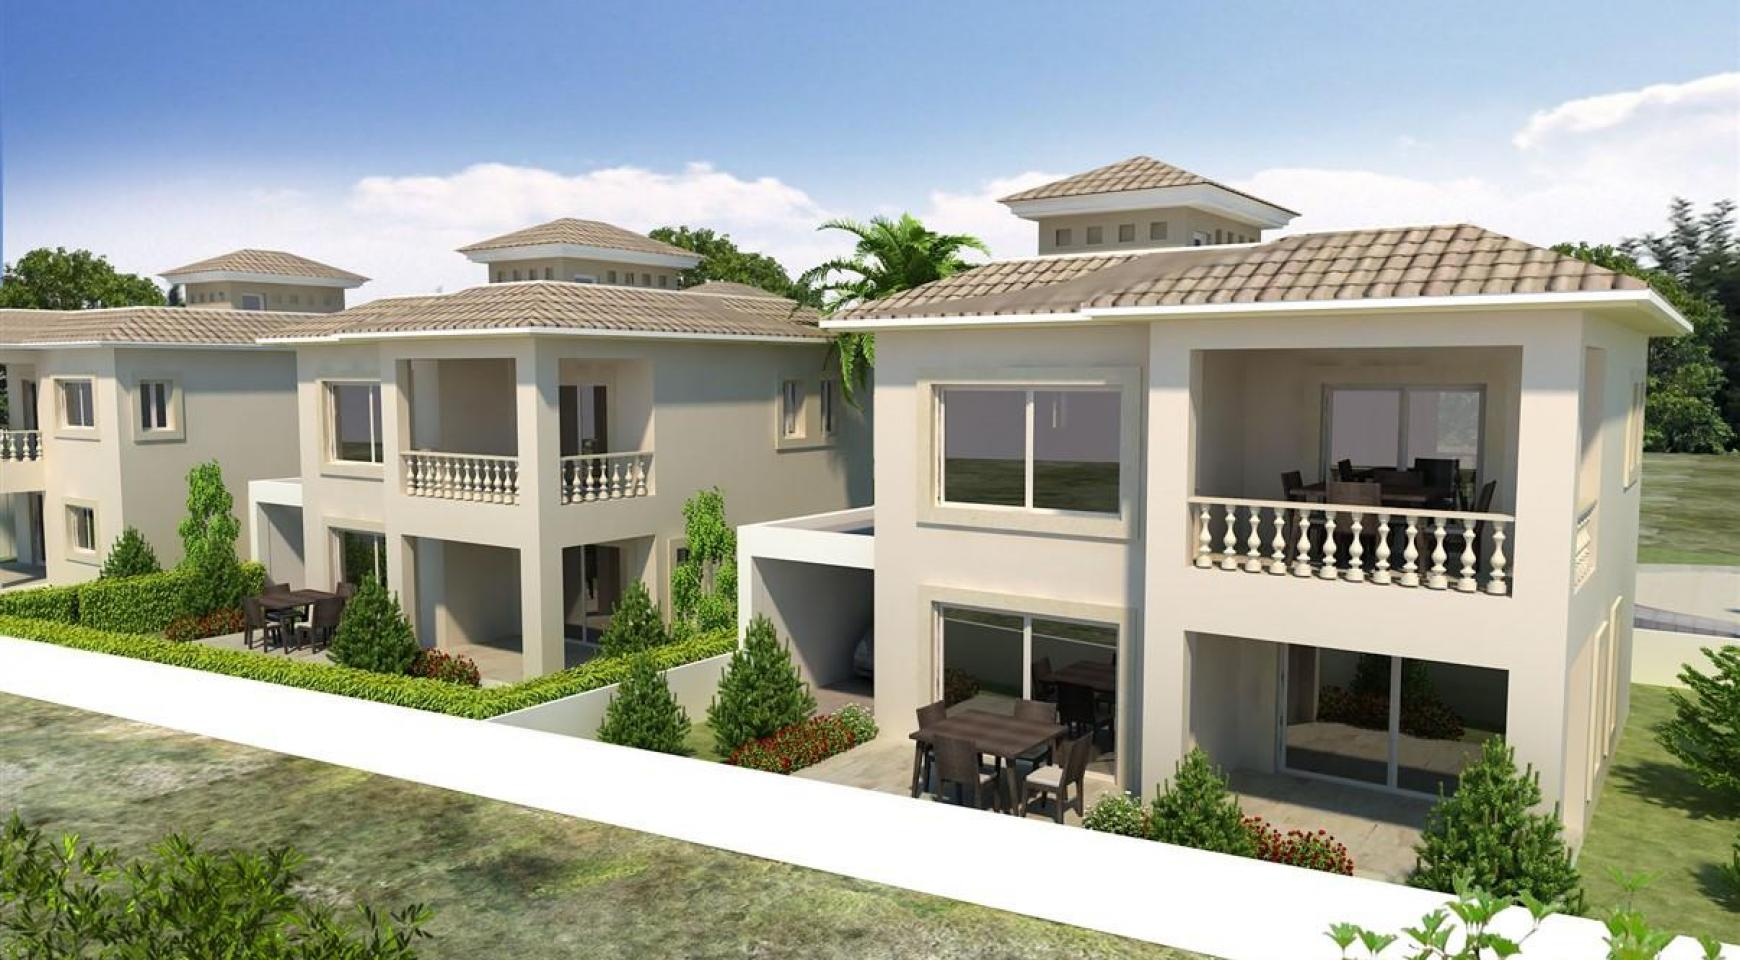 3 Bedroom Villa within a New Project - 19